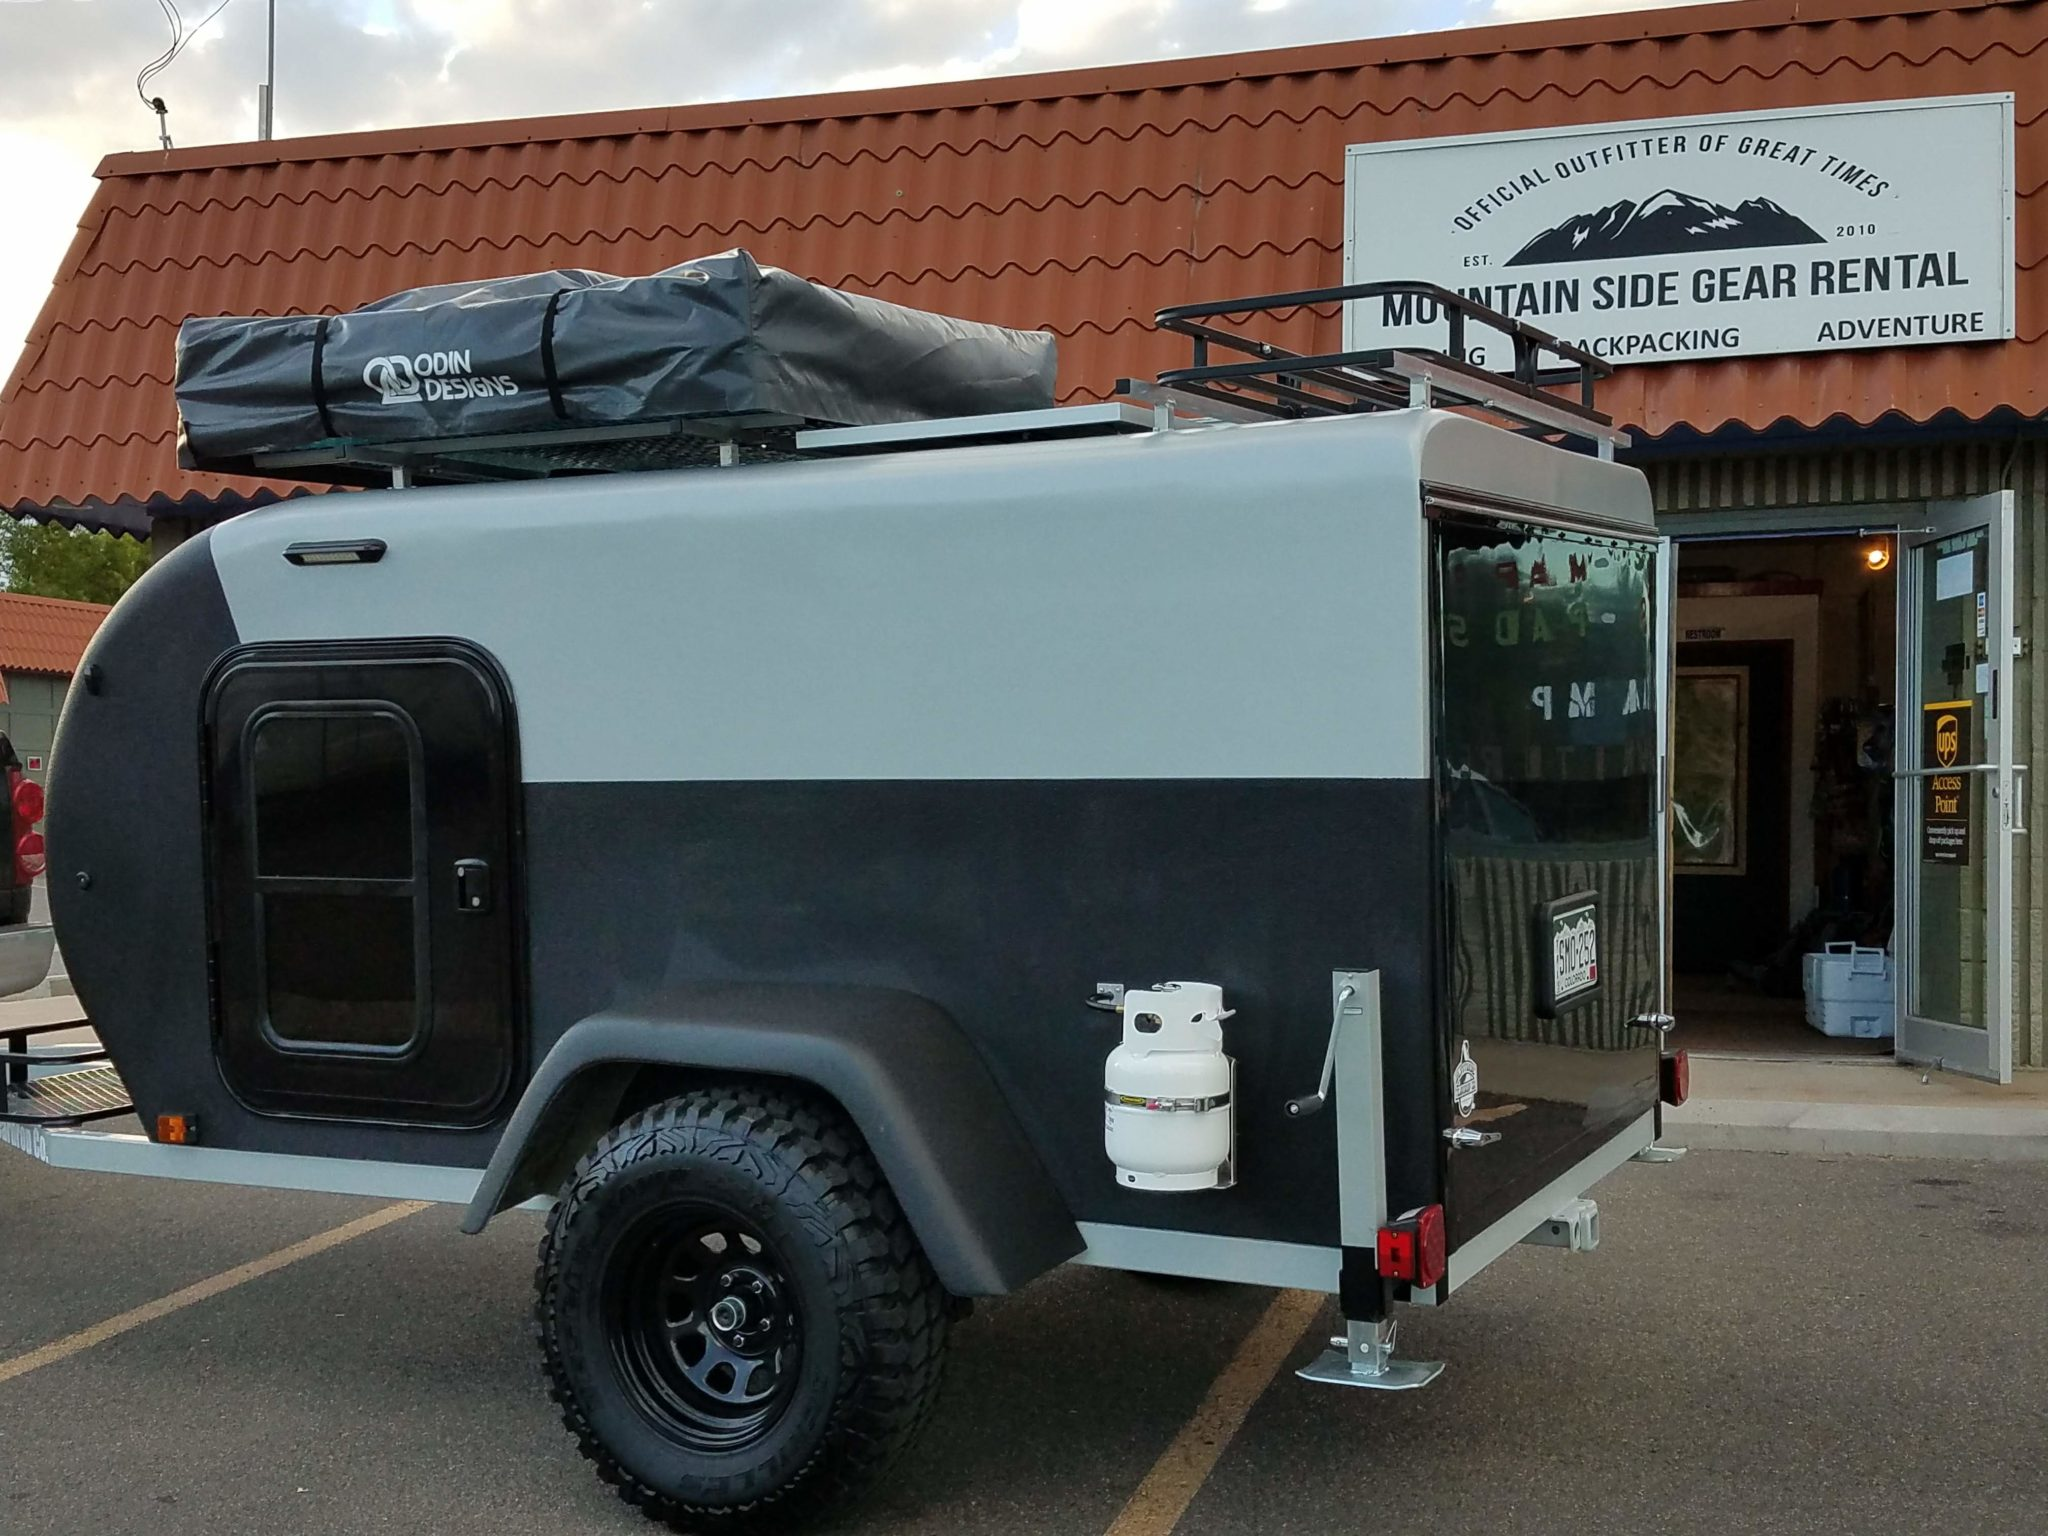 Teardrop Camper Trailer Rental - Rent A Camper From Denver